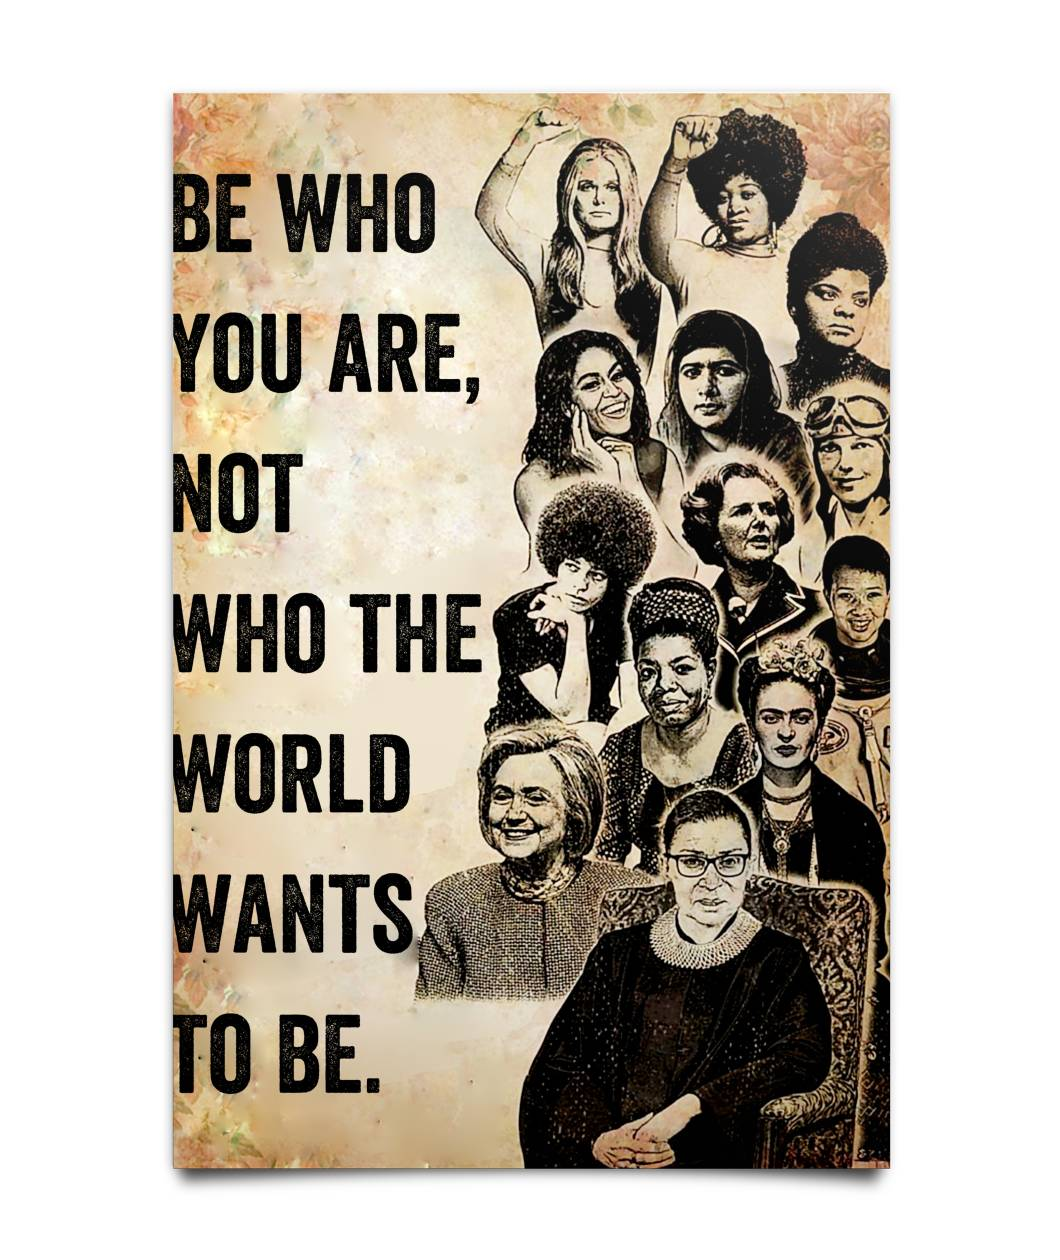 Be who you are not who the world wants to be Feminist poster